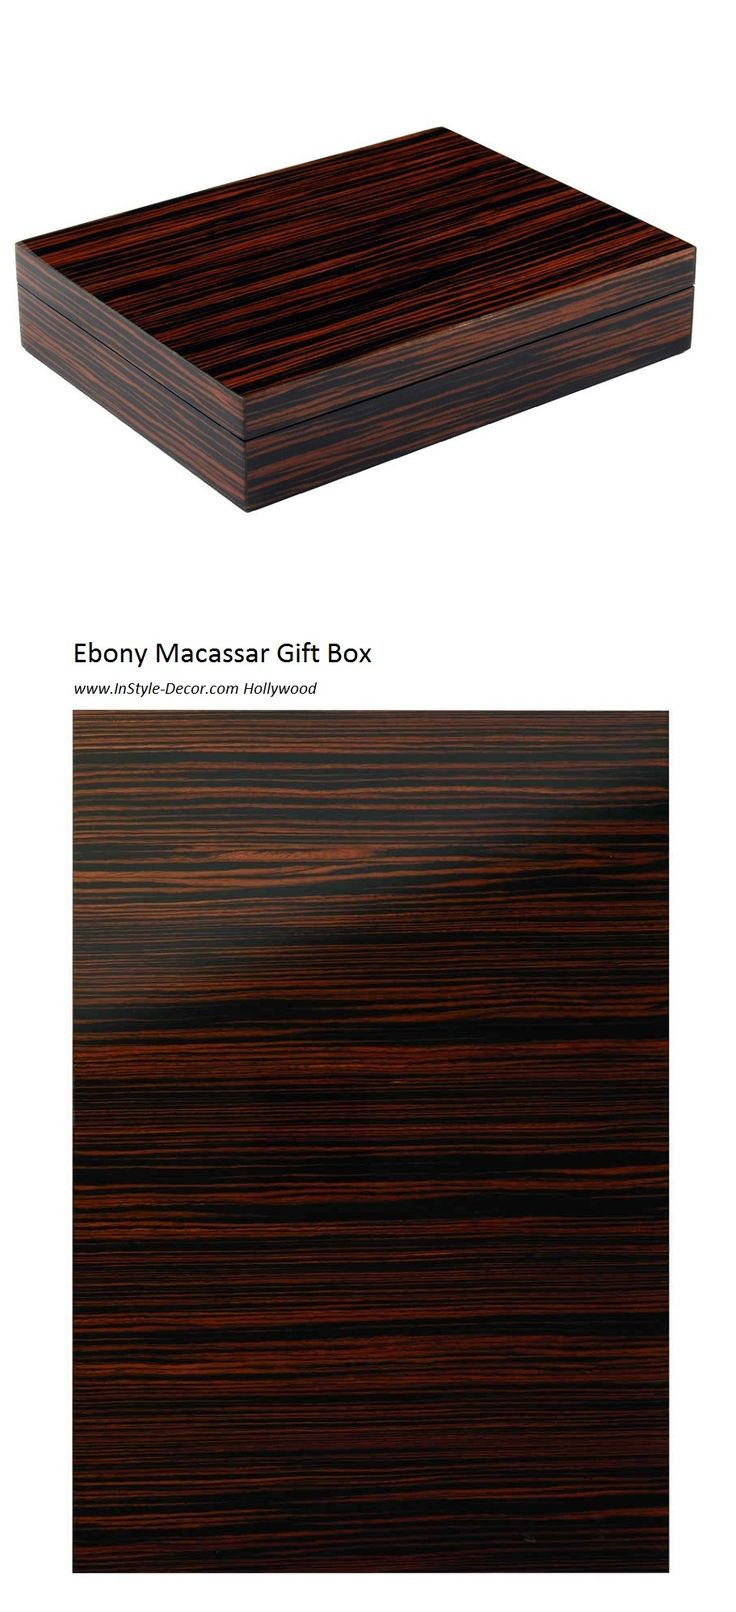 hardwood flooring elmsford new york of pinterest • the worlds catalog of ideas within 48813b92a27c7a82cfd51d5a94aedbc3